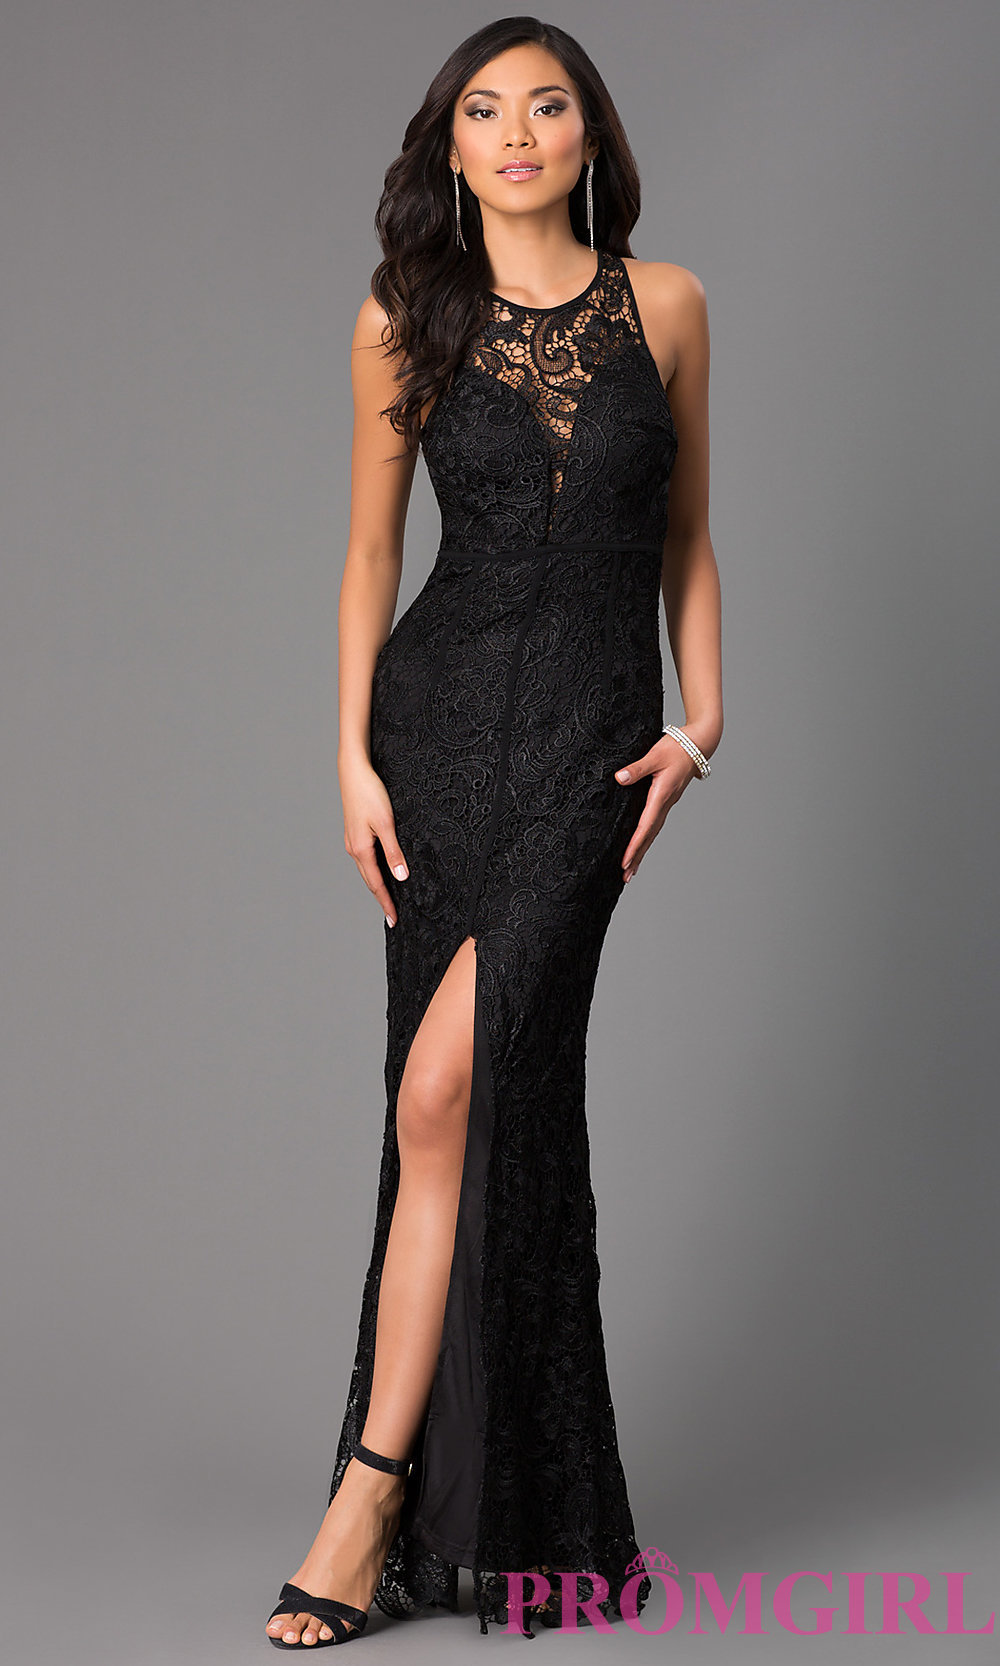 long lace dress hover to zoom · image of long lace sleeveless dress ... FBAUELB